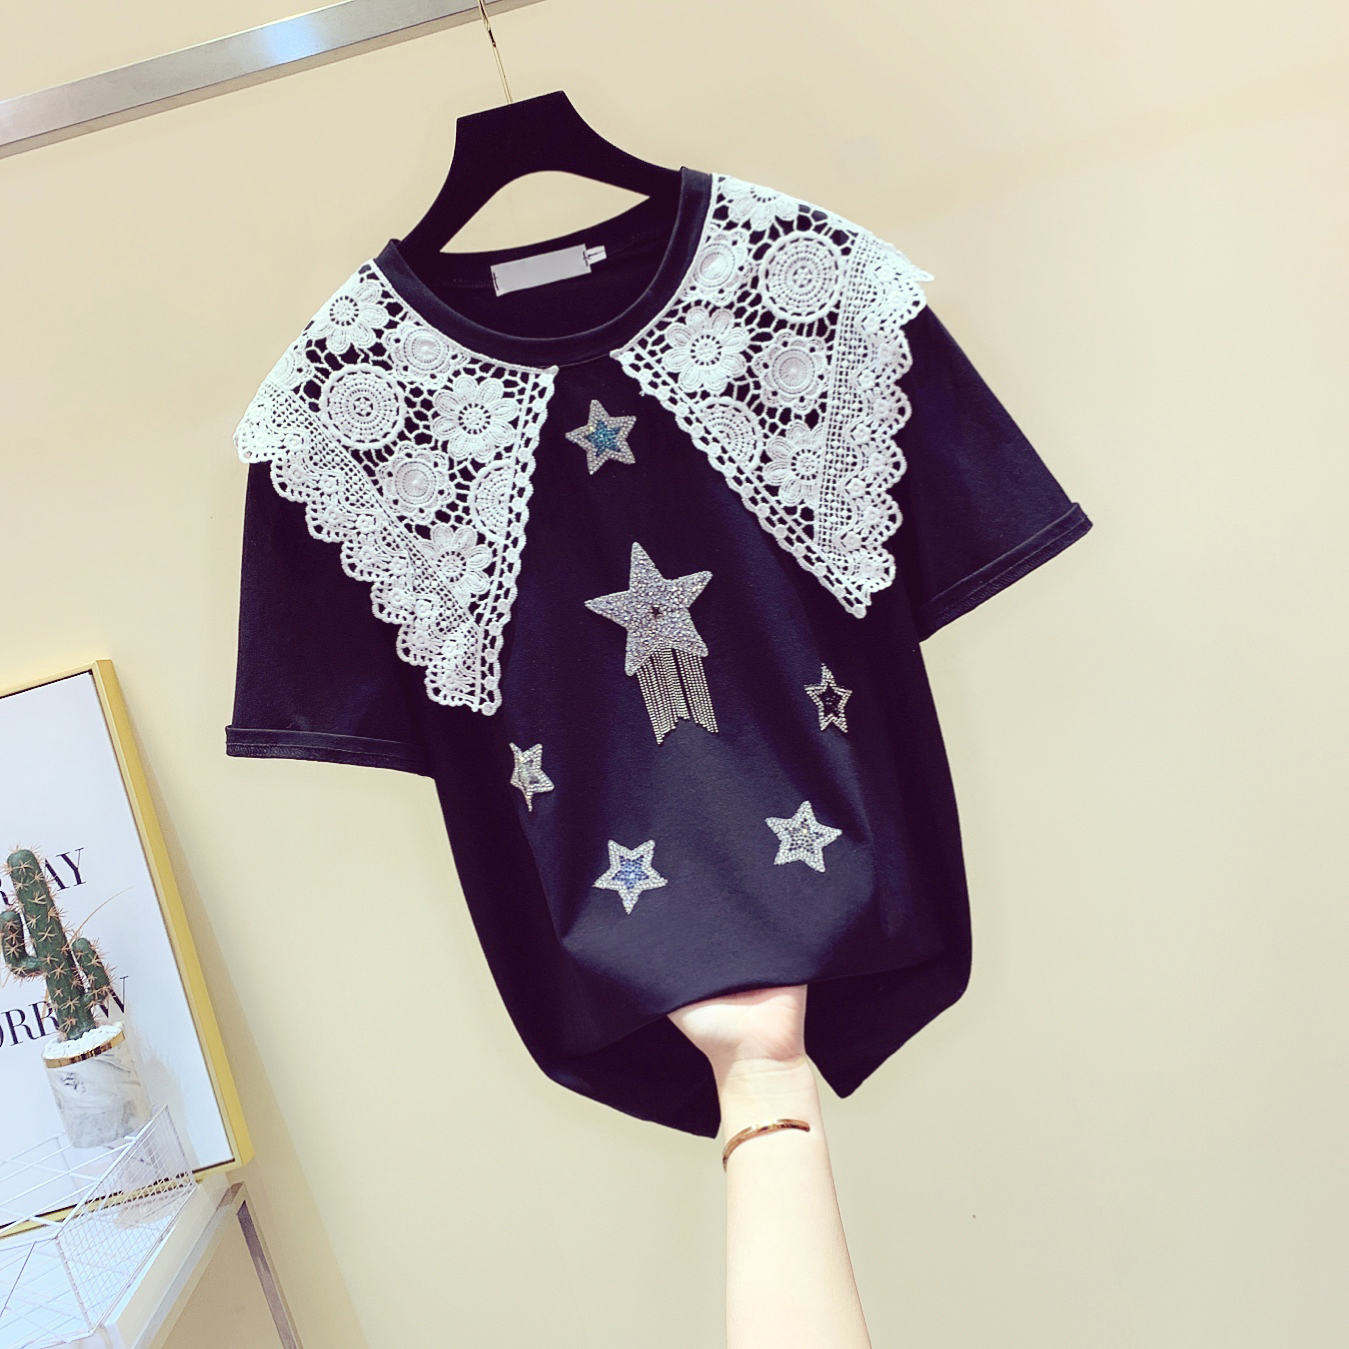 Capable 2019 Hot Selling Blouse Women Button Five-pointed Star Hot Drill Plus Size Tops Blouse Temperament Cozy Blouse Vetement Femme Low Price Blouses & Shirts